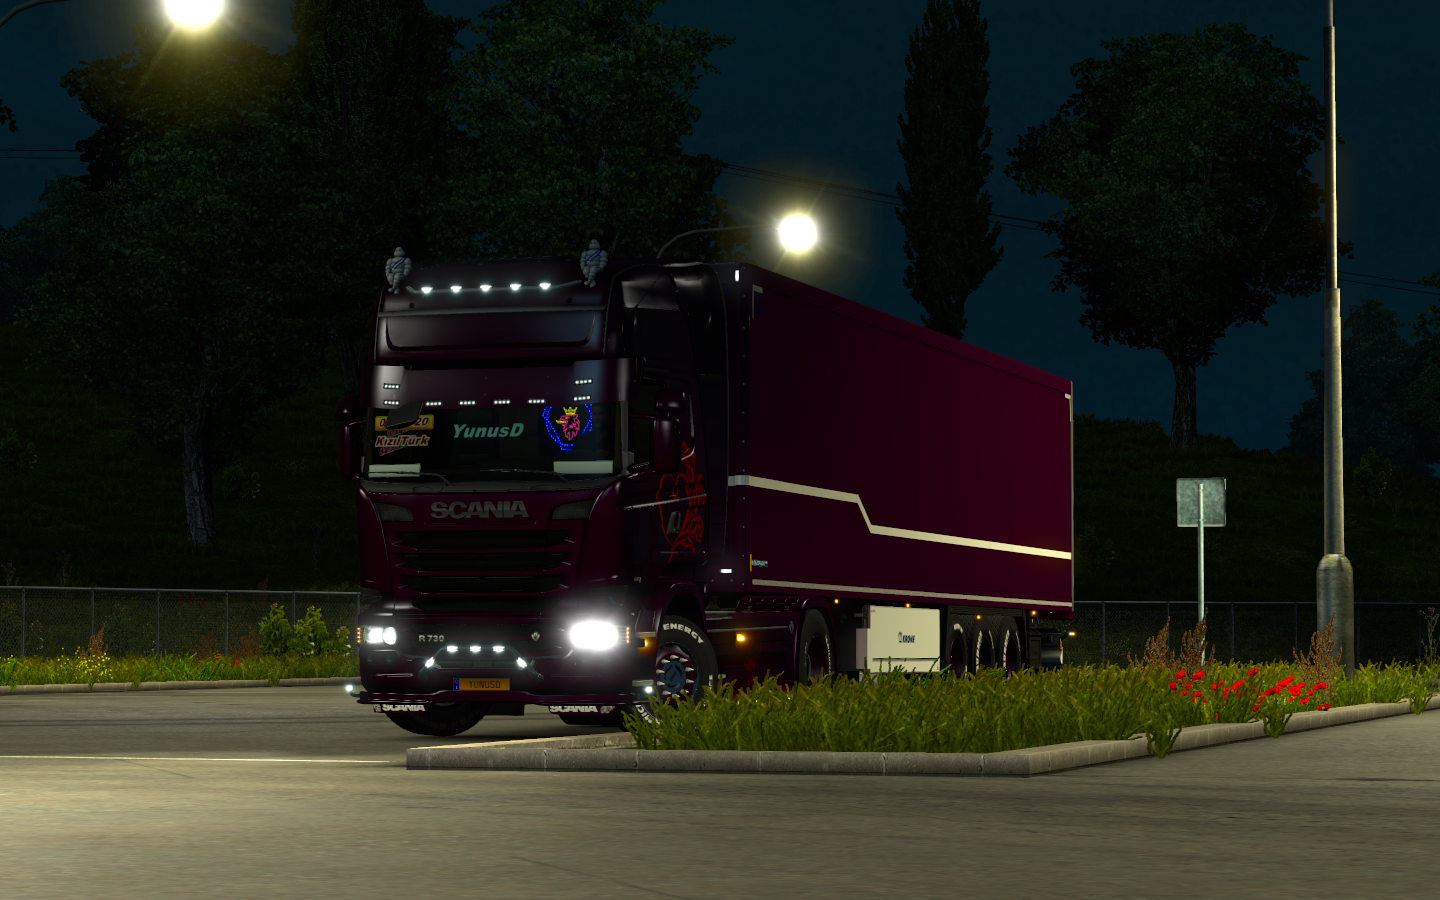 ets2_20190215_143648_00.png